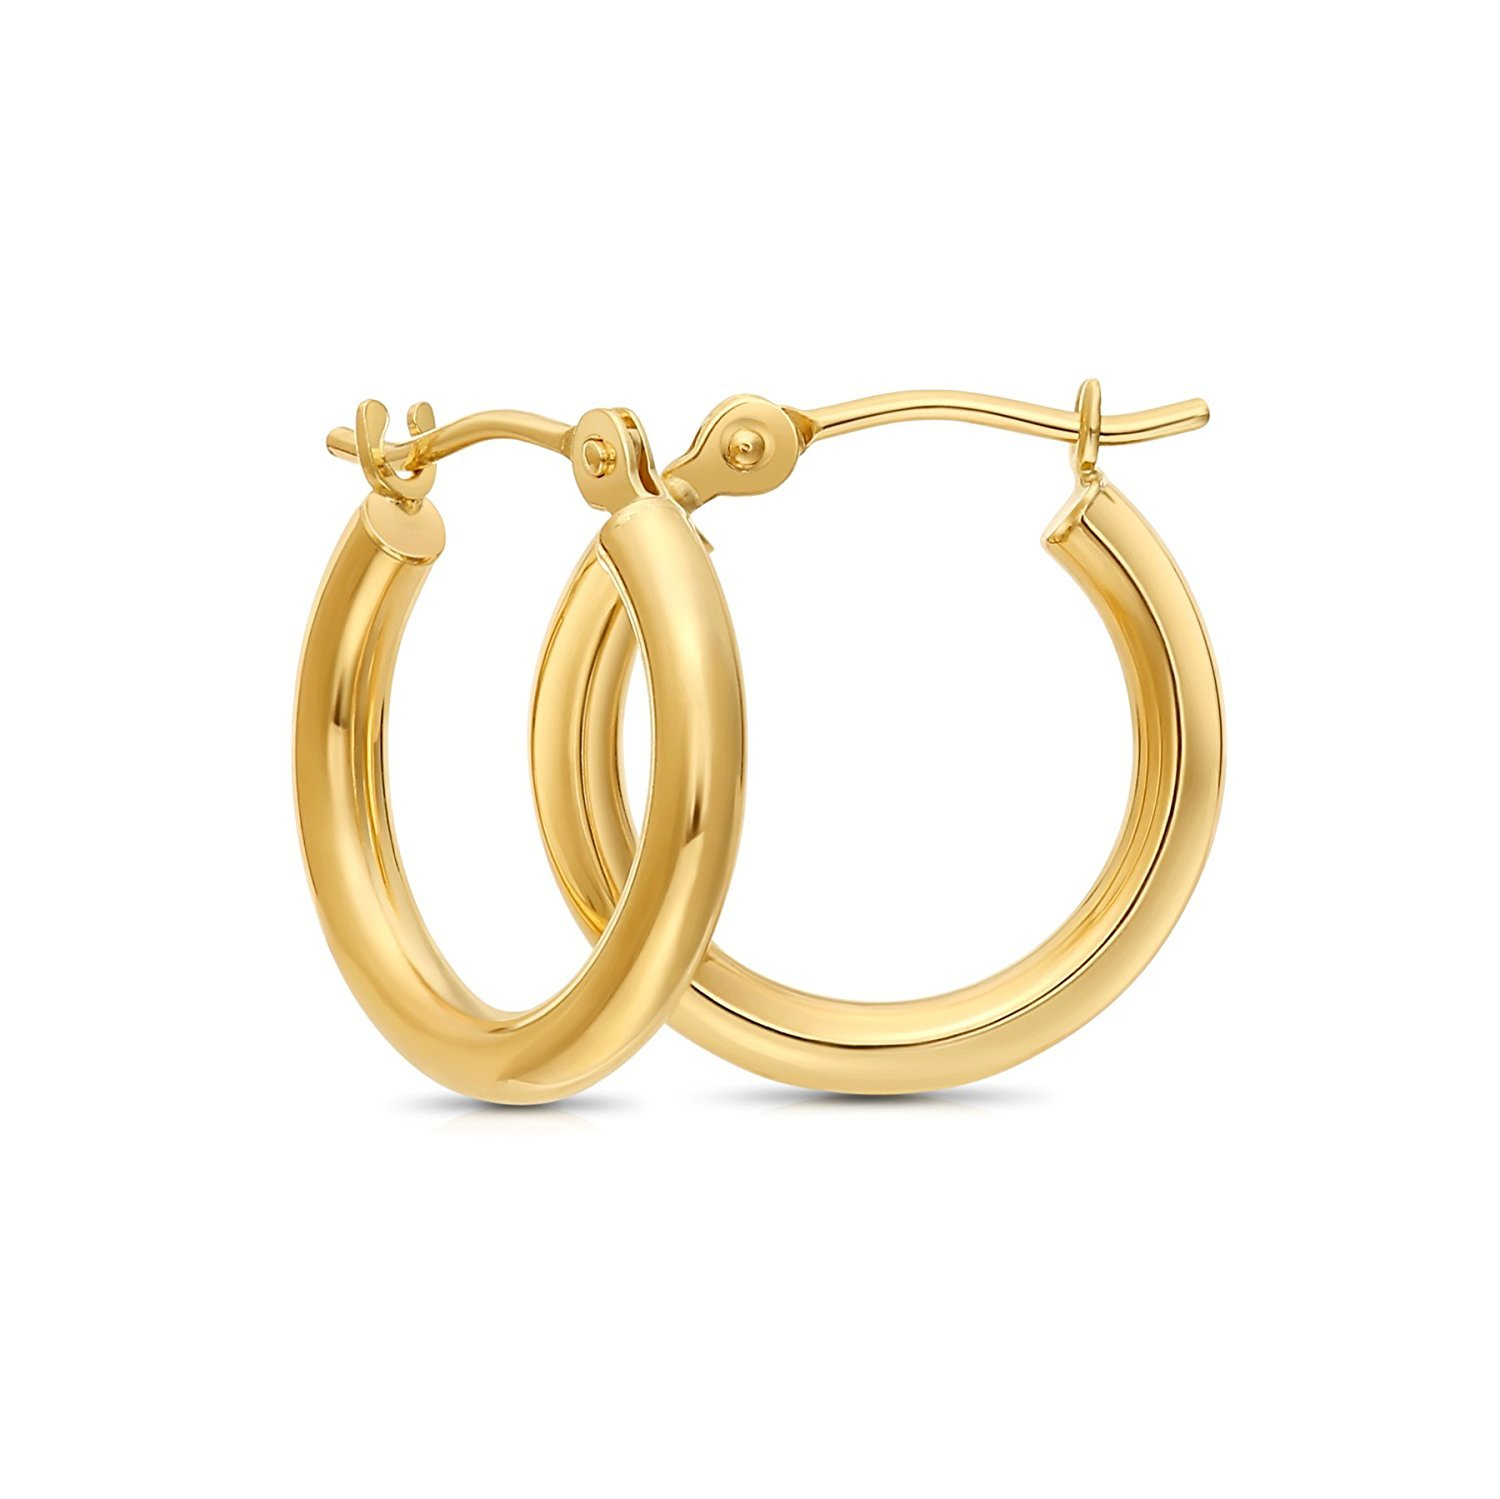 Tiny 14k Yellow Gold Extra Small Hoop Earrings, 12mm Diameter (yellow-gold)